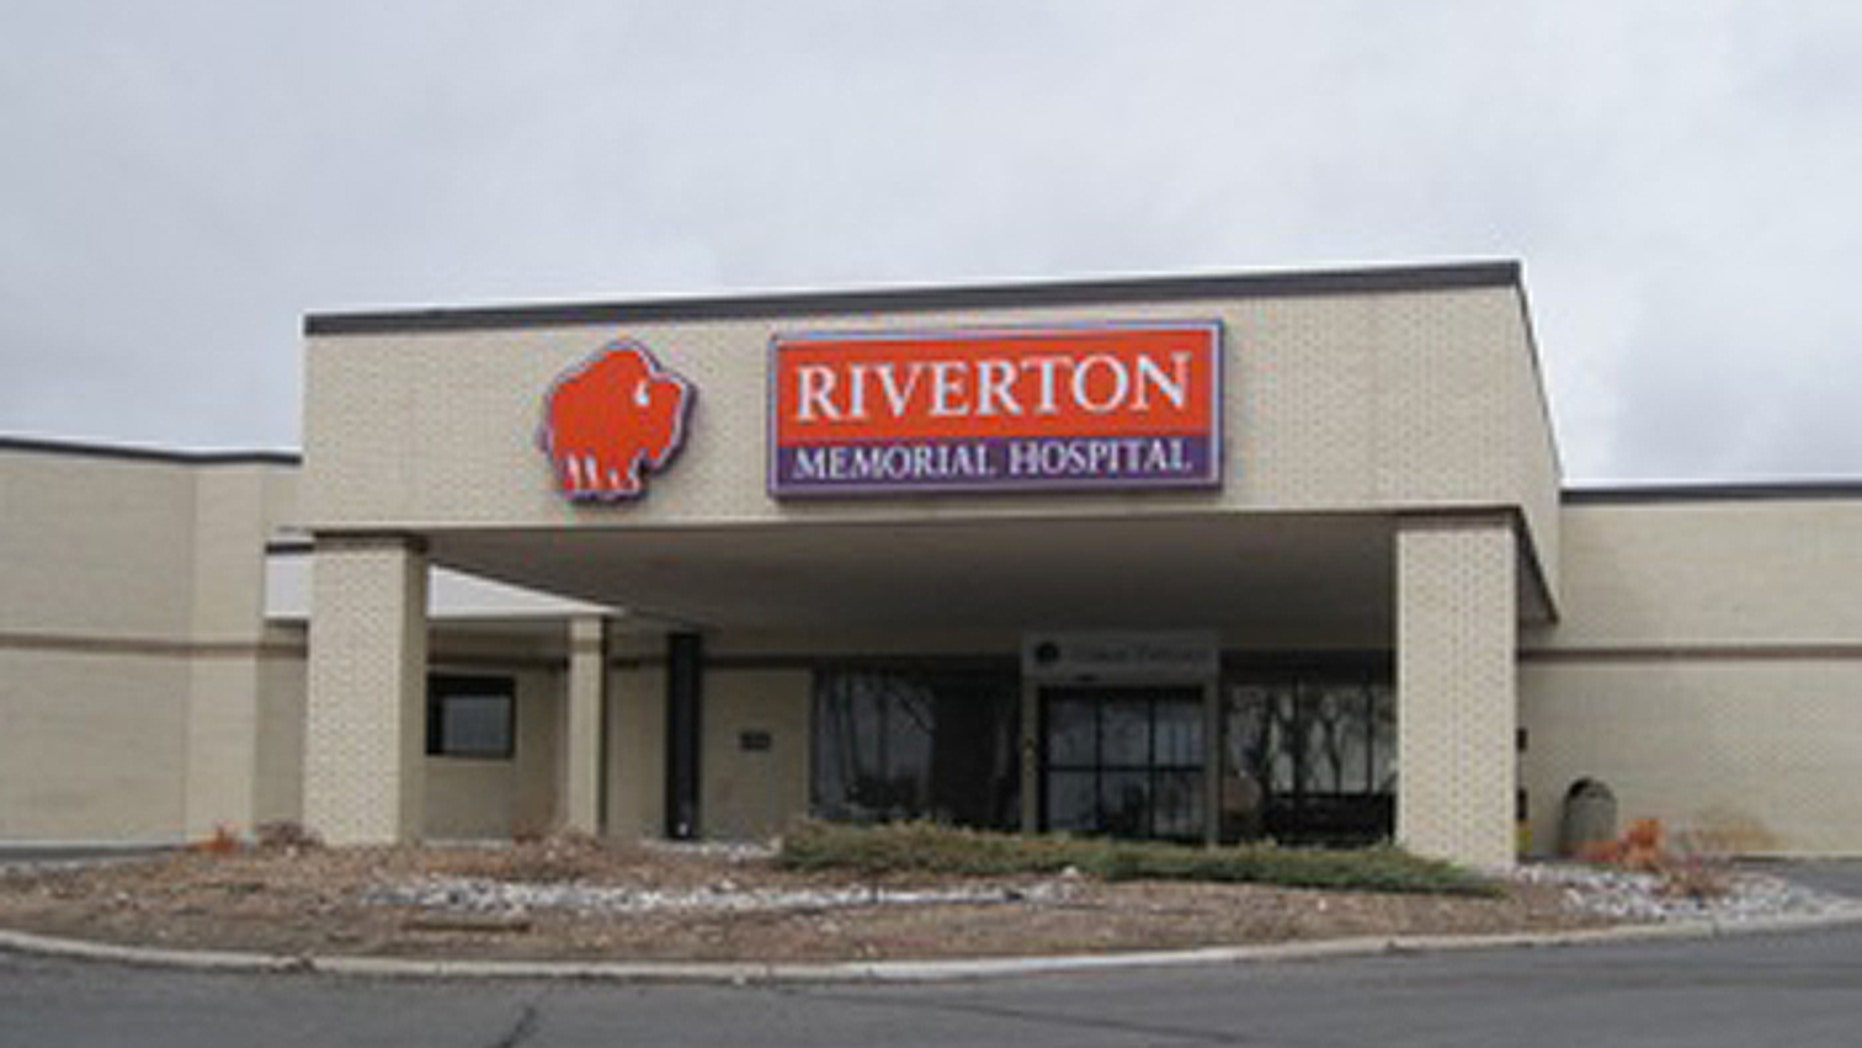 A 2013 EPA ruling that Riverton Memorial Hospital sits on Indian land has thrown a legal wrinkle into a malpractice case.